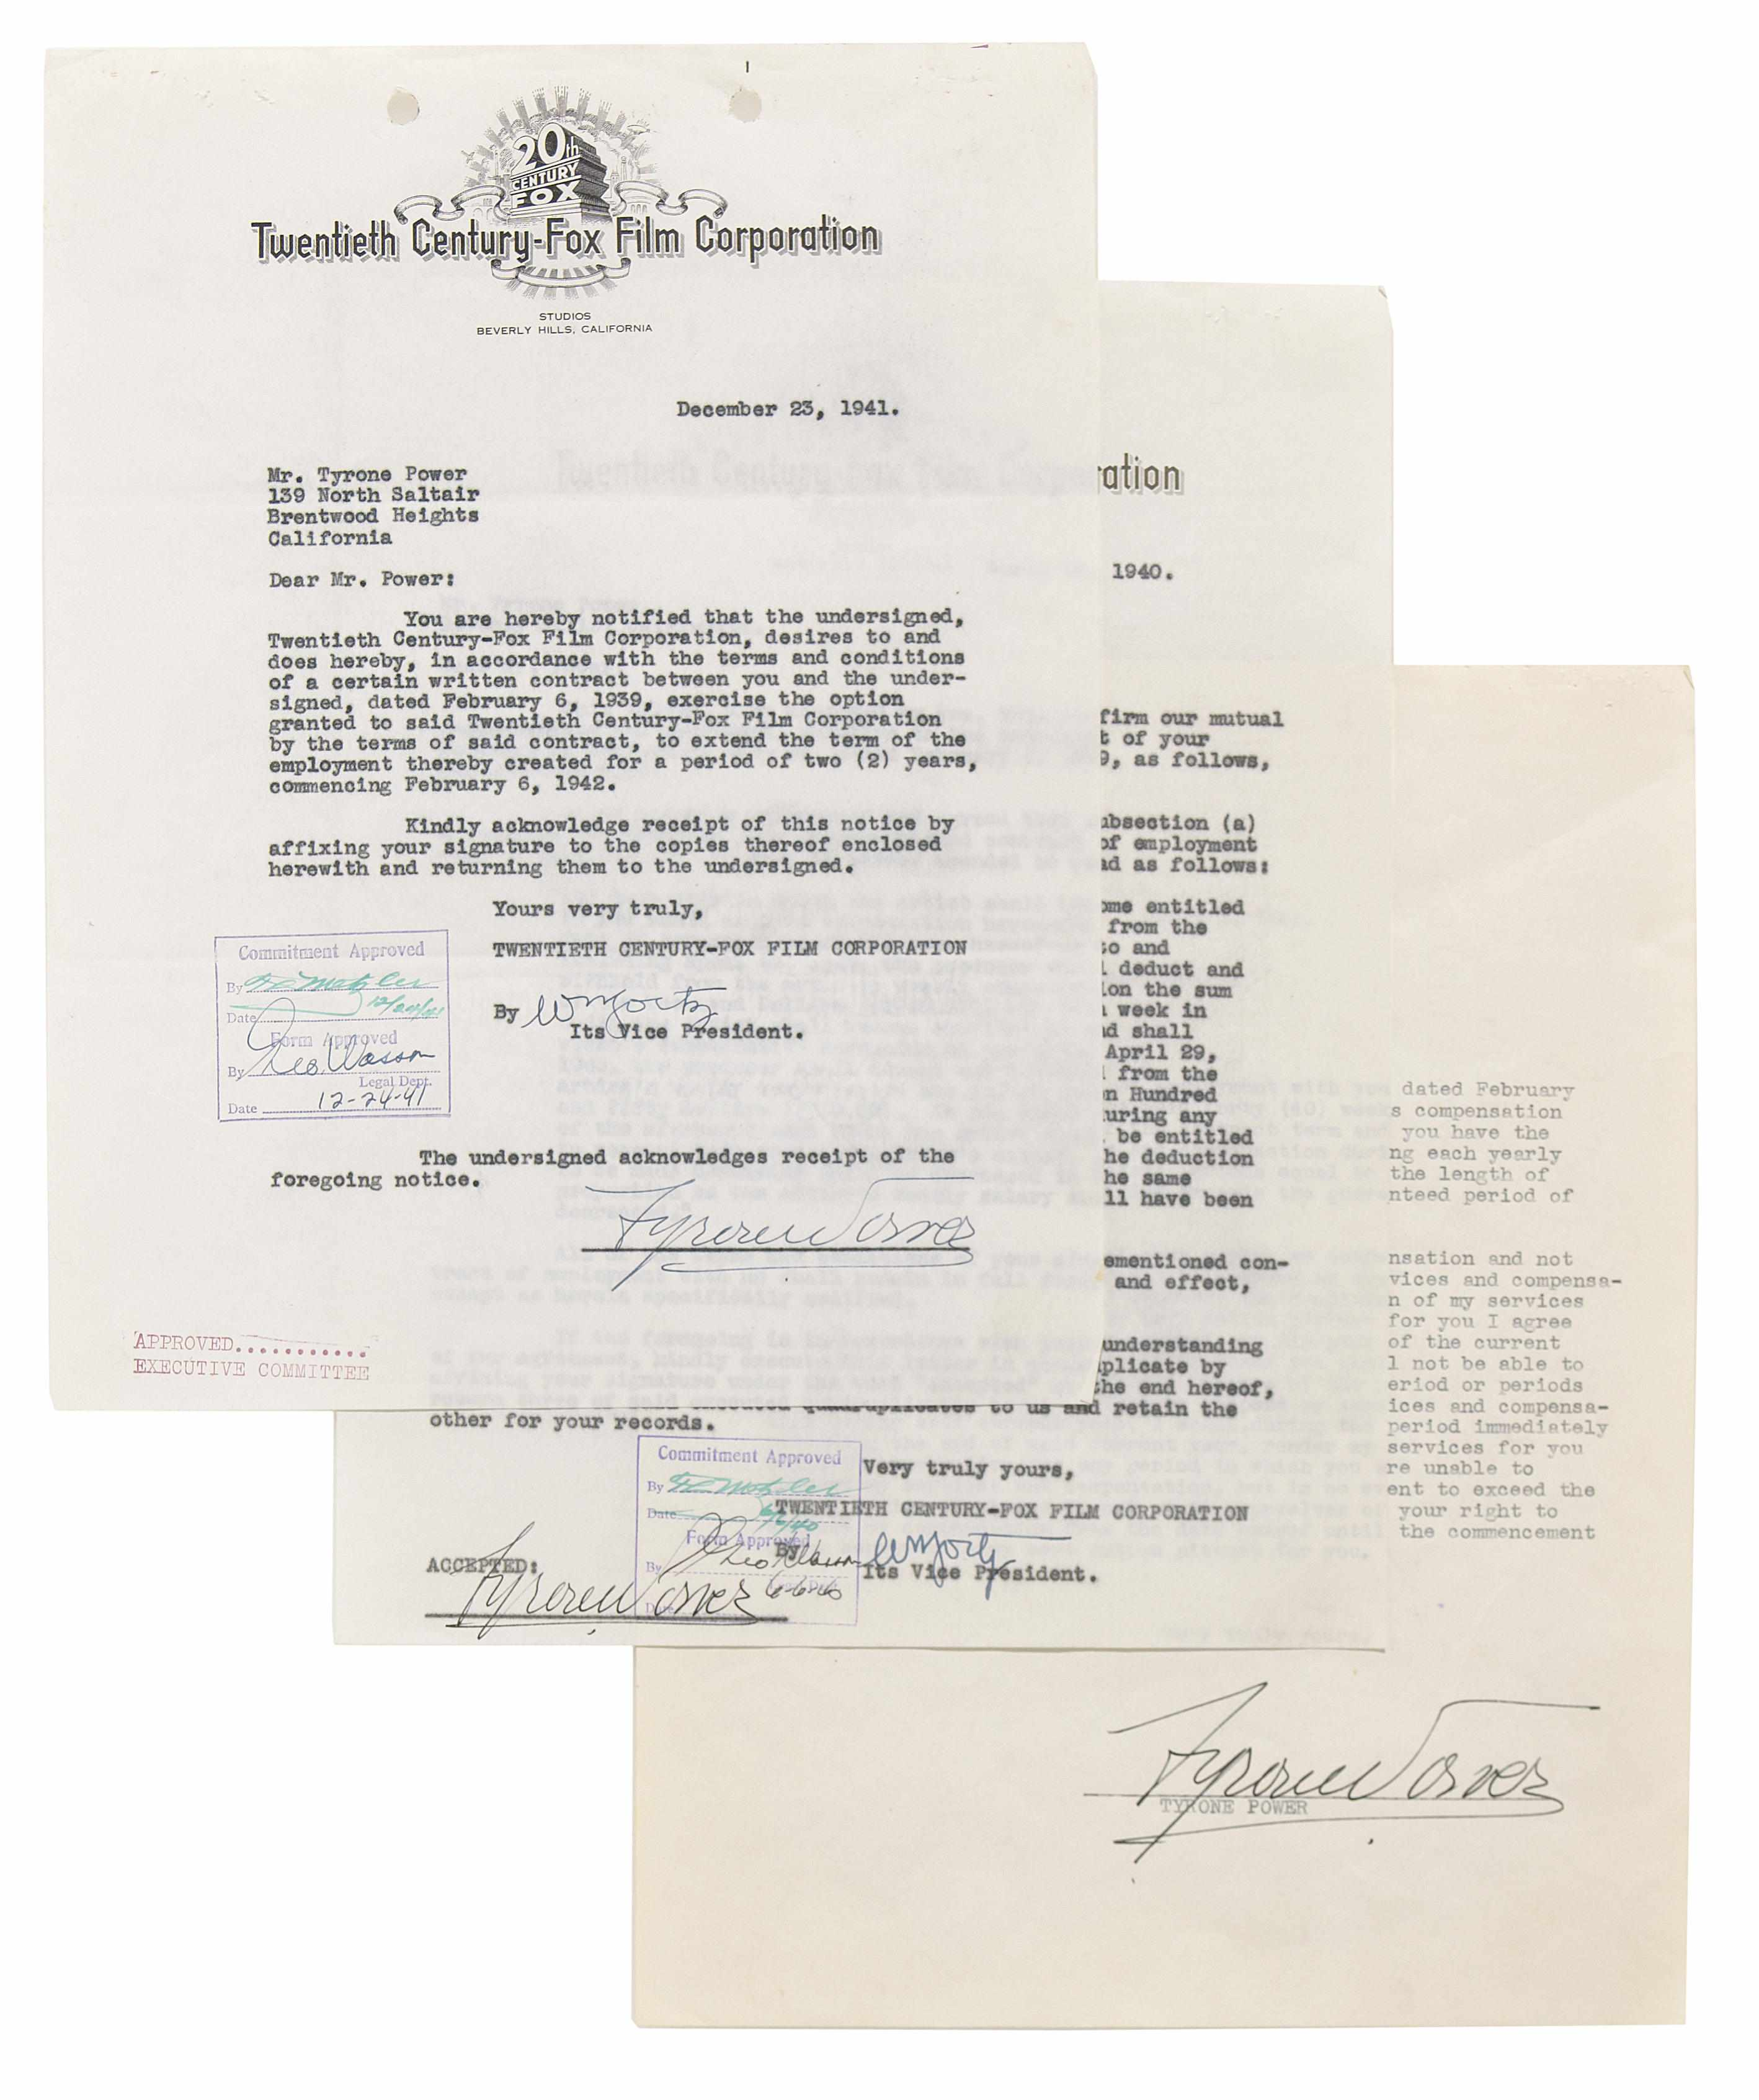 Tyrone Power signed documents 1940 and 1941